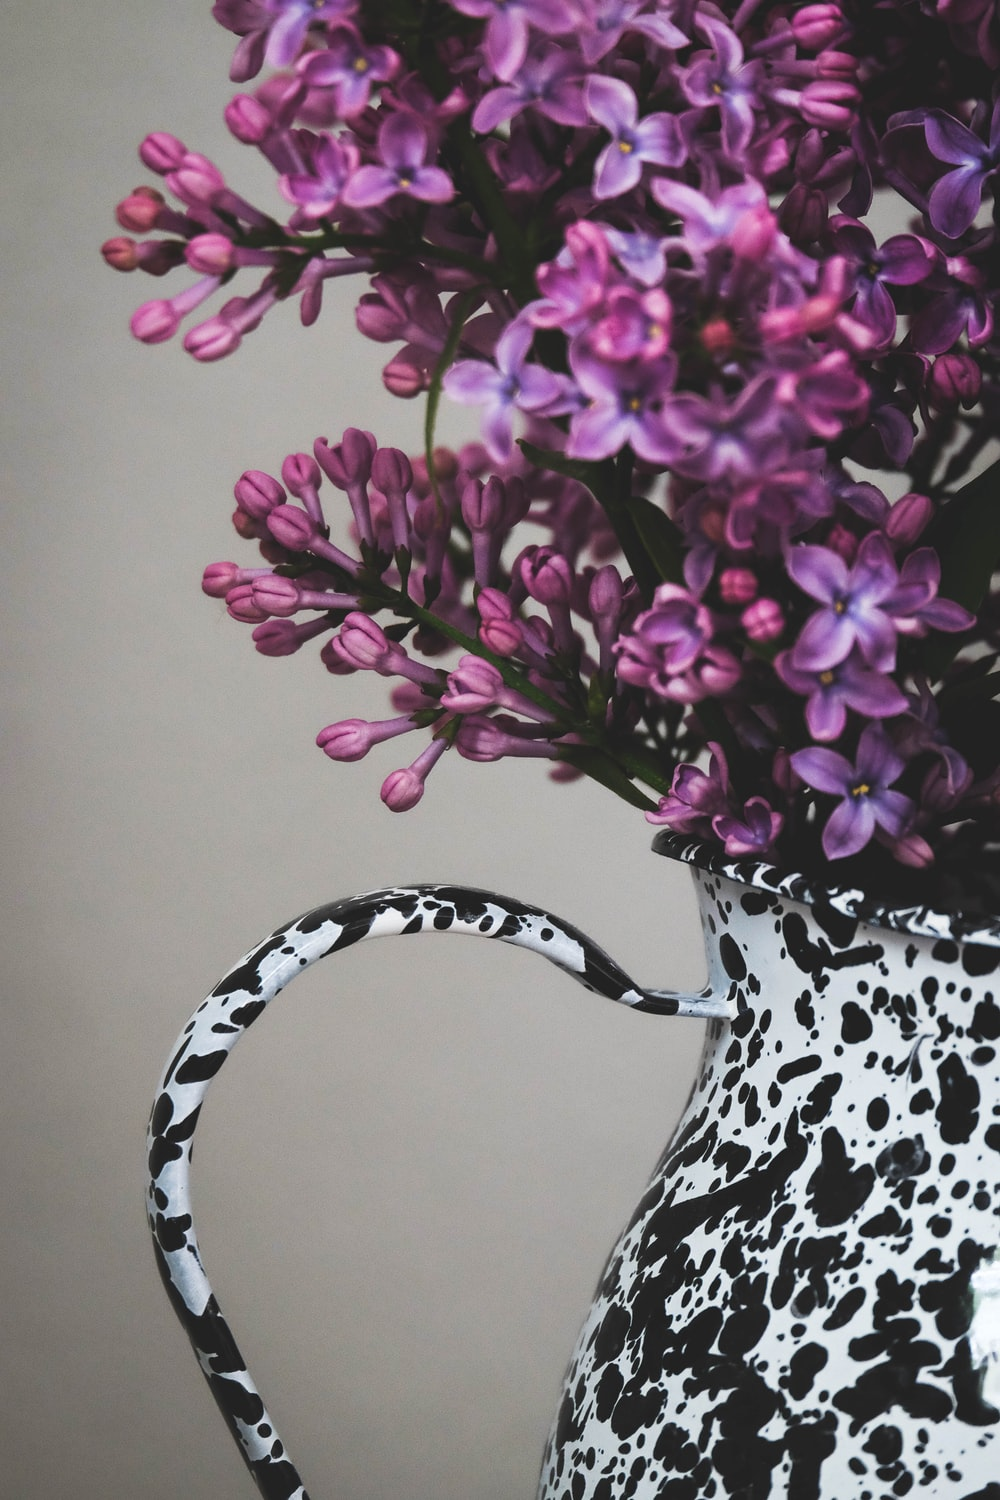 purple and white flowers in white and black ceramic vase